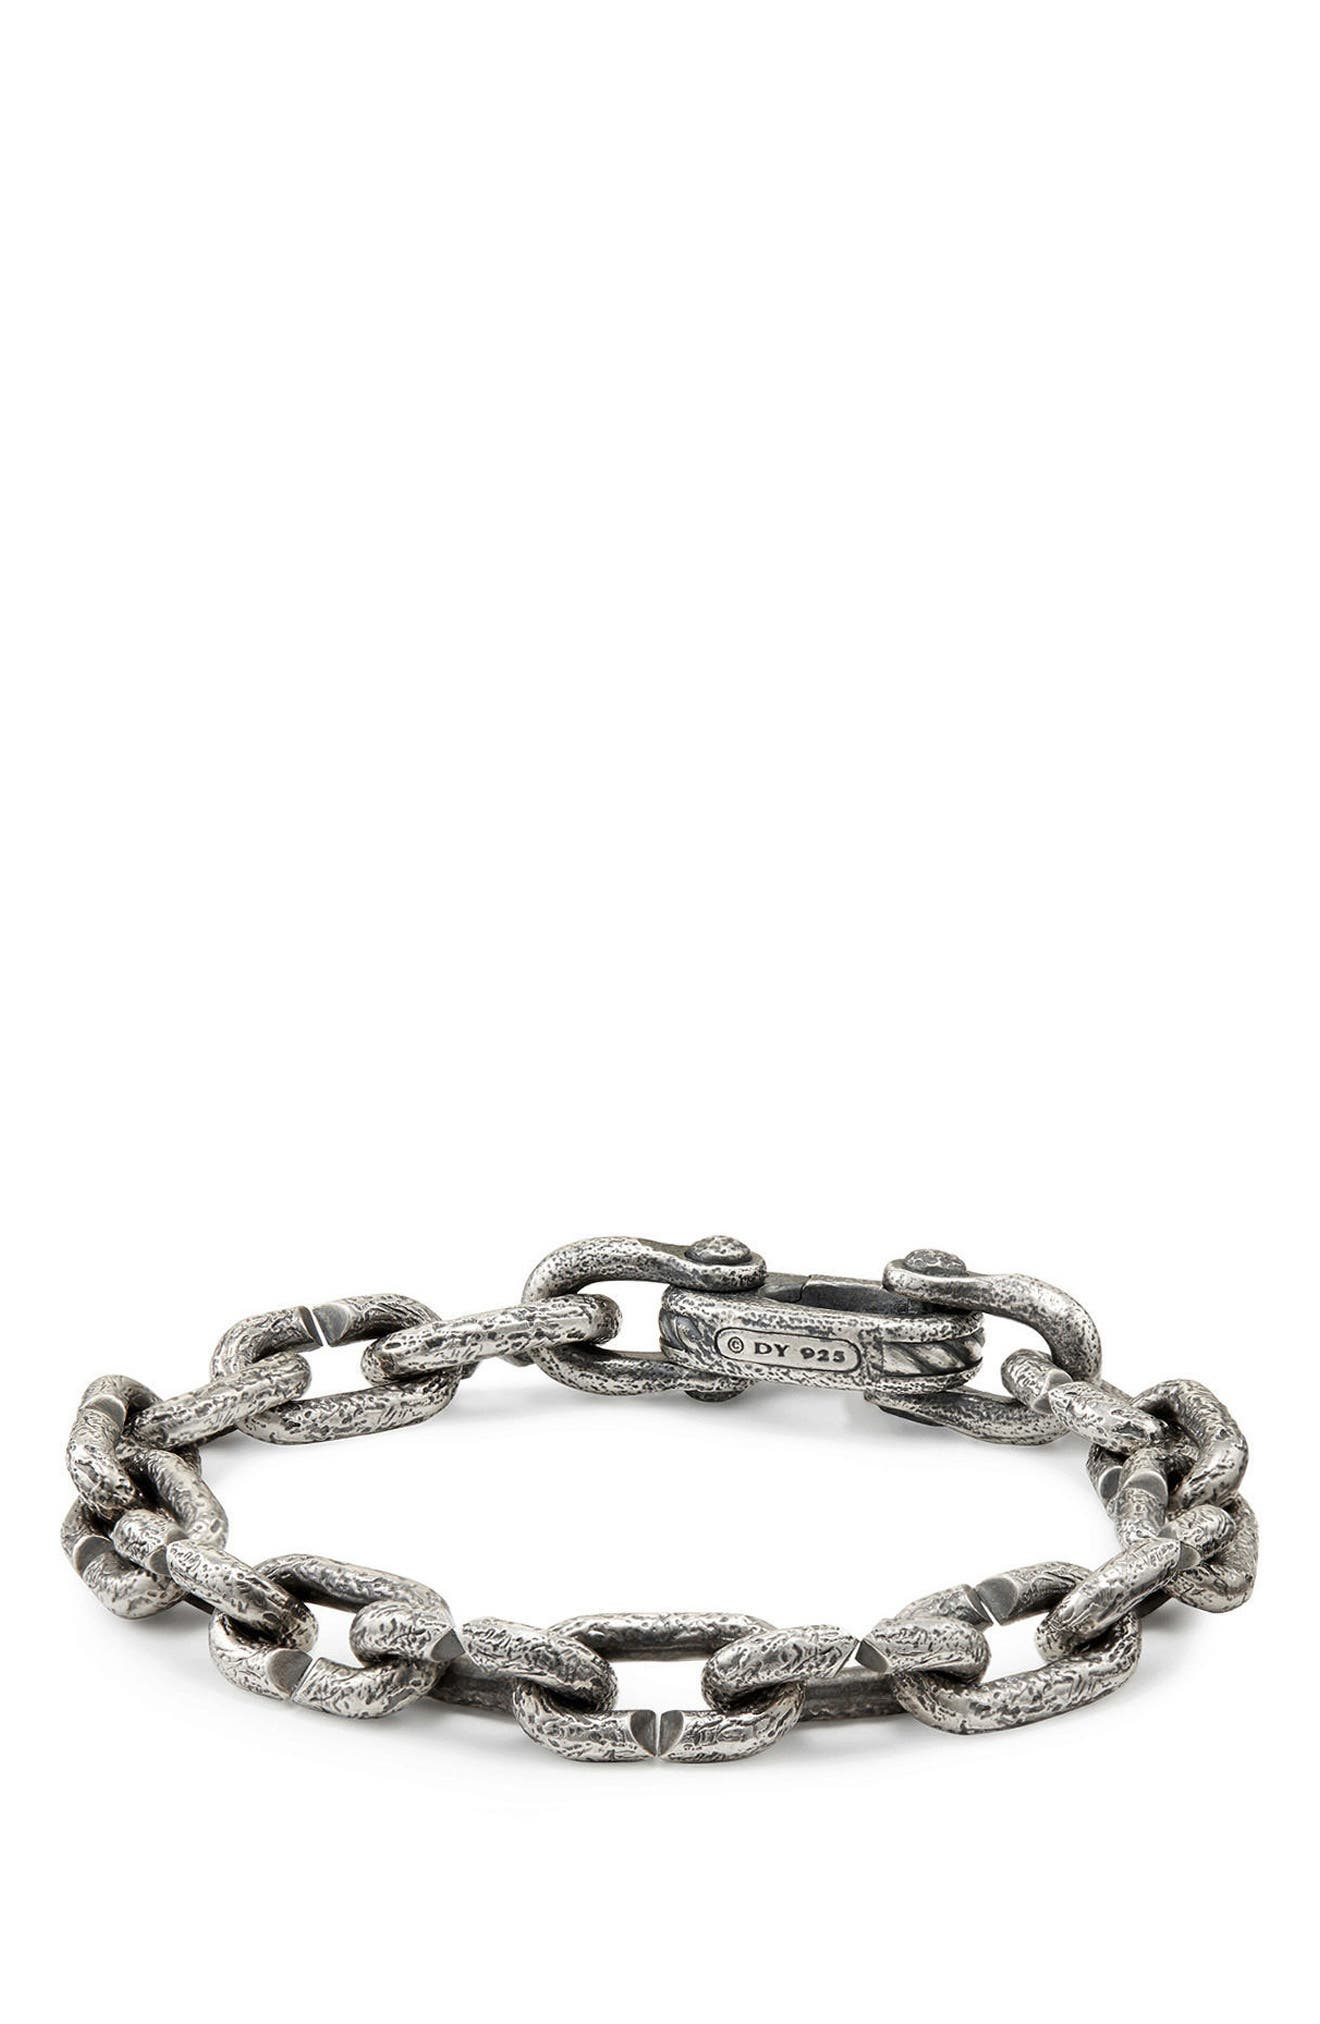 Main Image - David Yurman Shipwreck Chain Bracelet